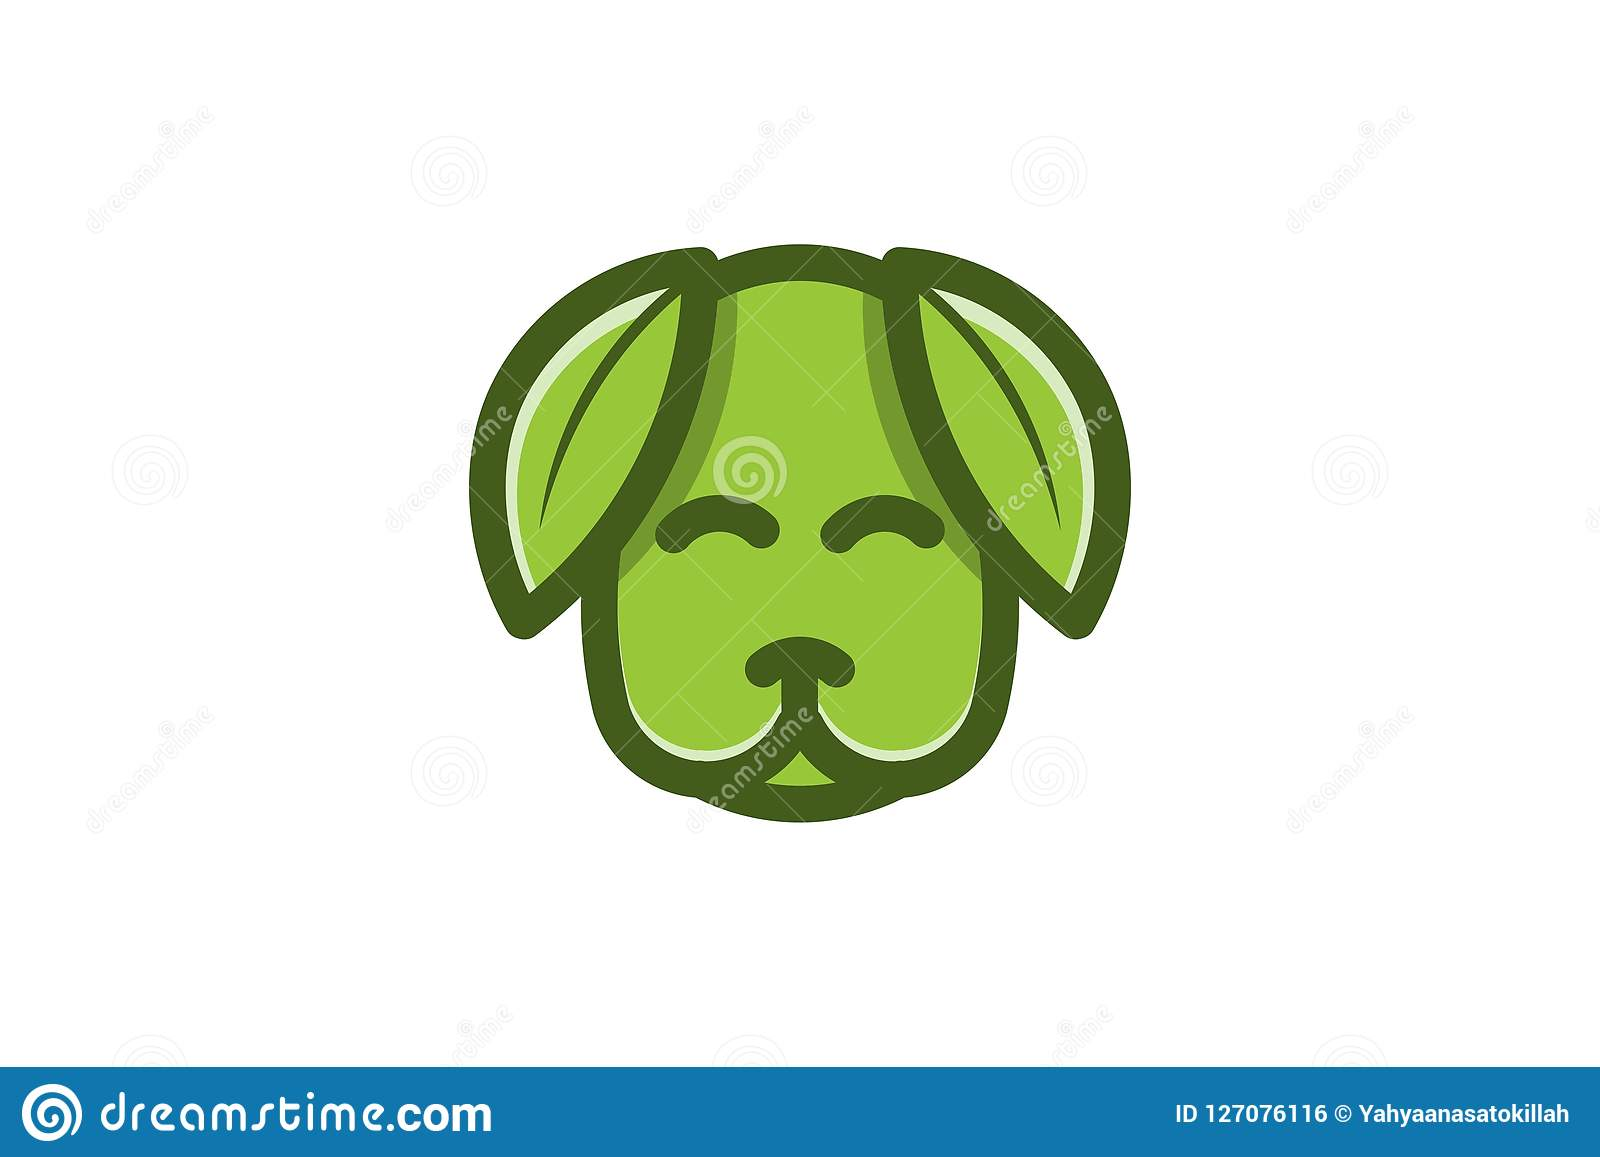 Dog Leaf, Pet Healthy Logo Designs Inspiration, Vector ...